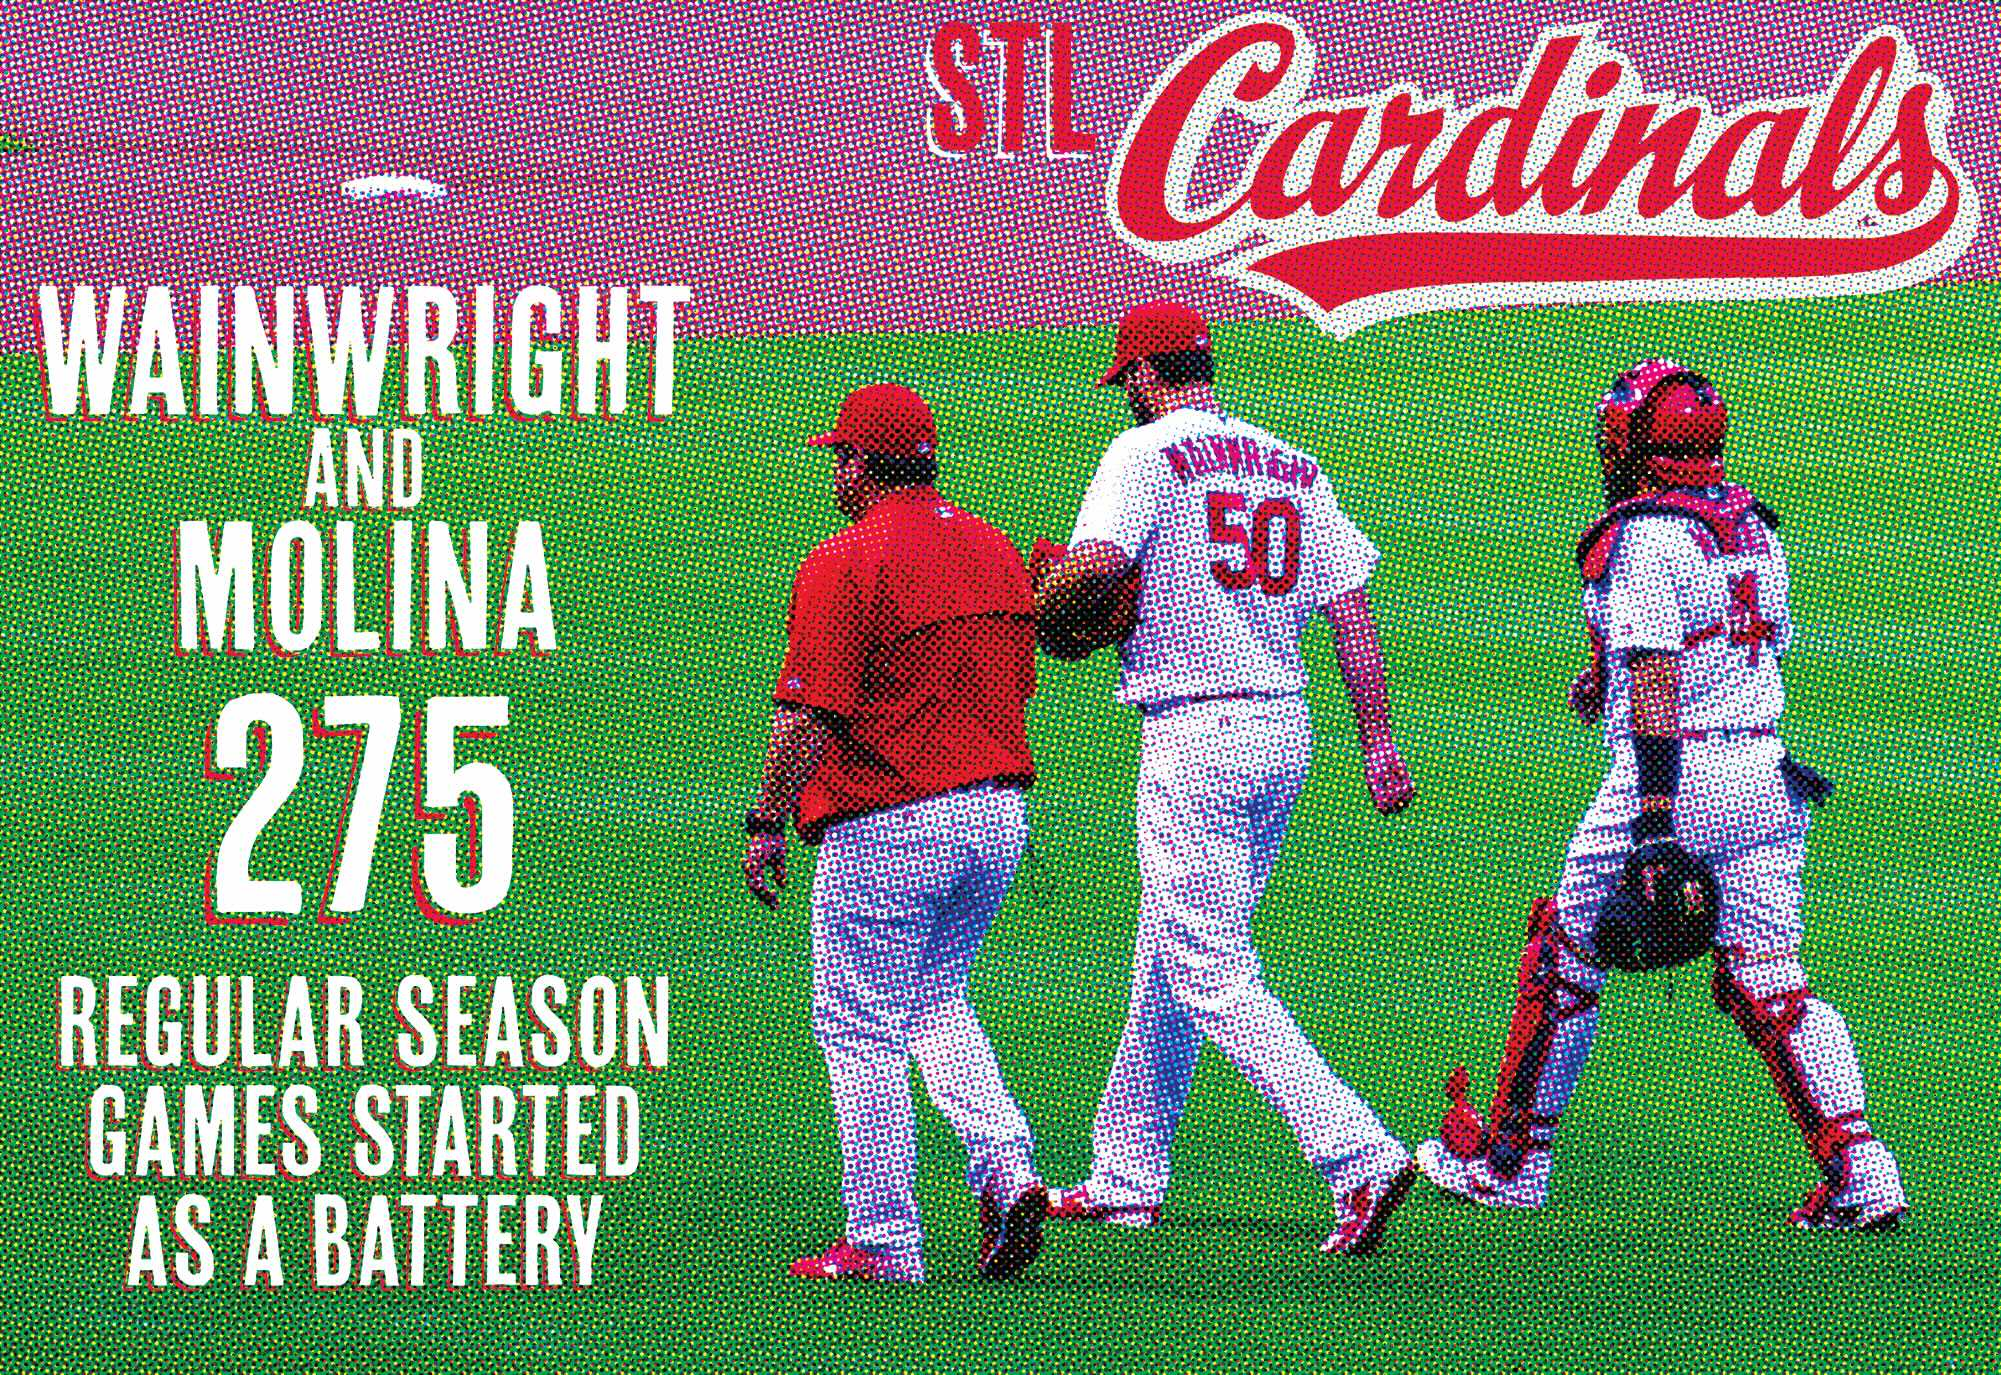 An image of Adam Wainwright and Yadier Molina walking on a baseball field with the text